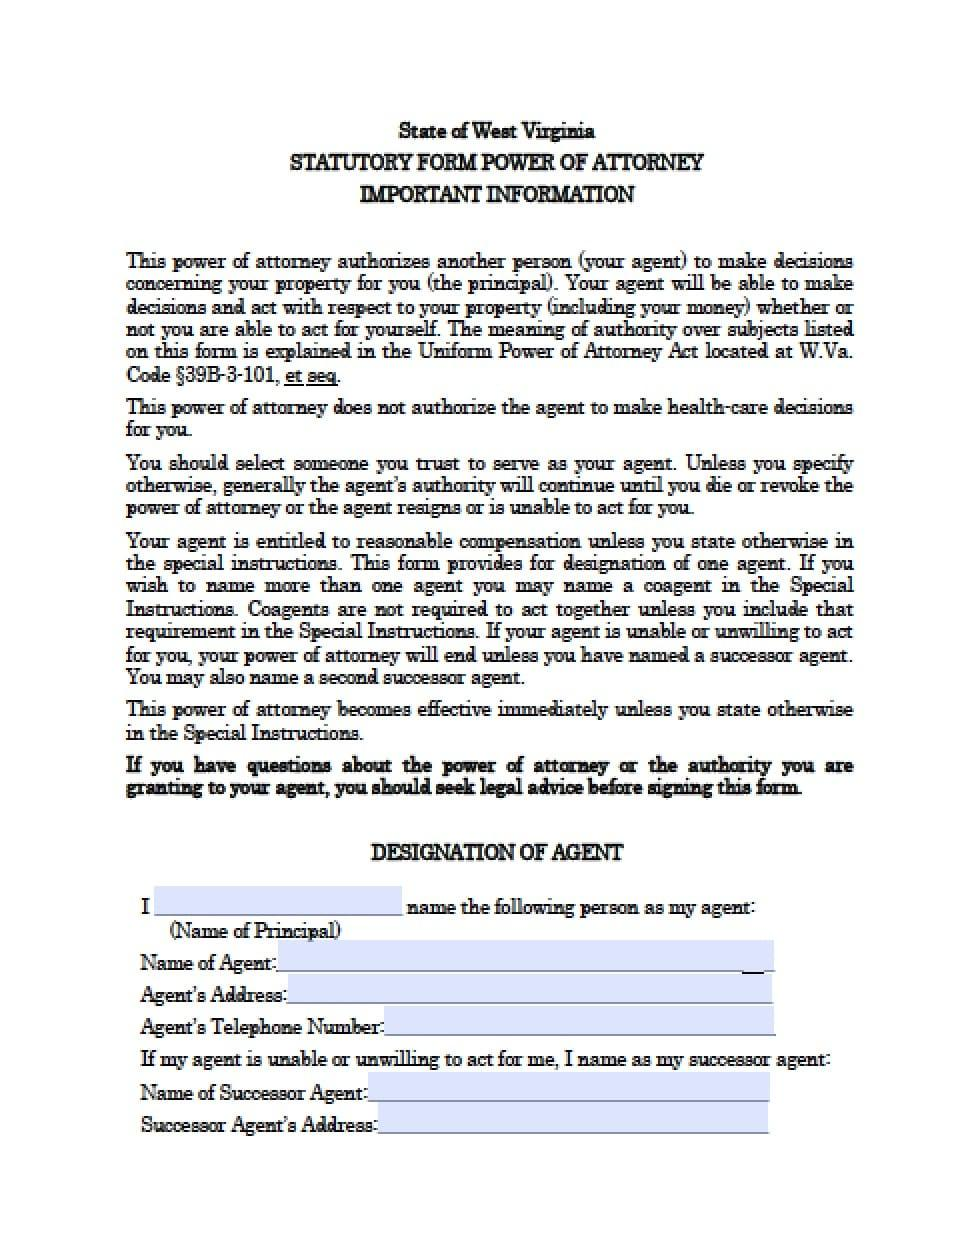 Forms For Power Of Attorney In Virginia